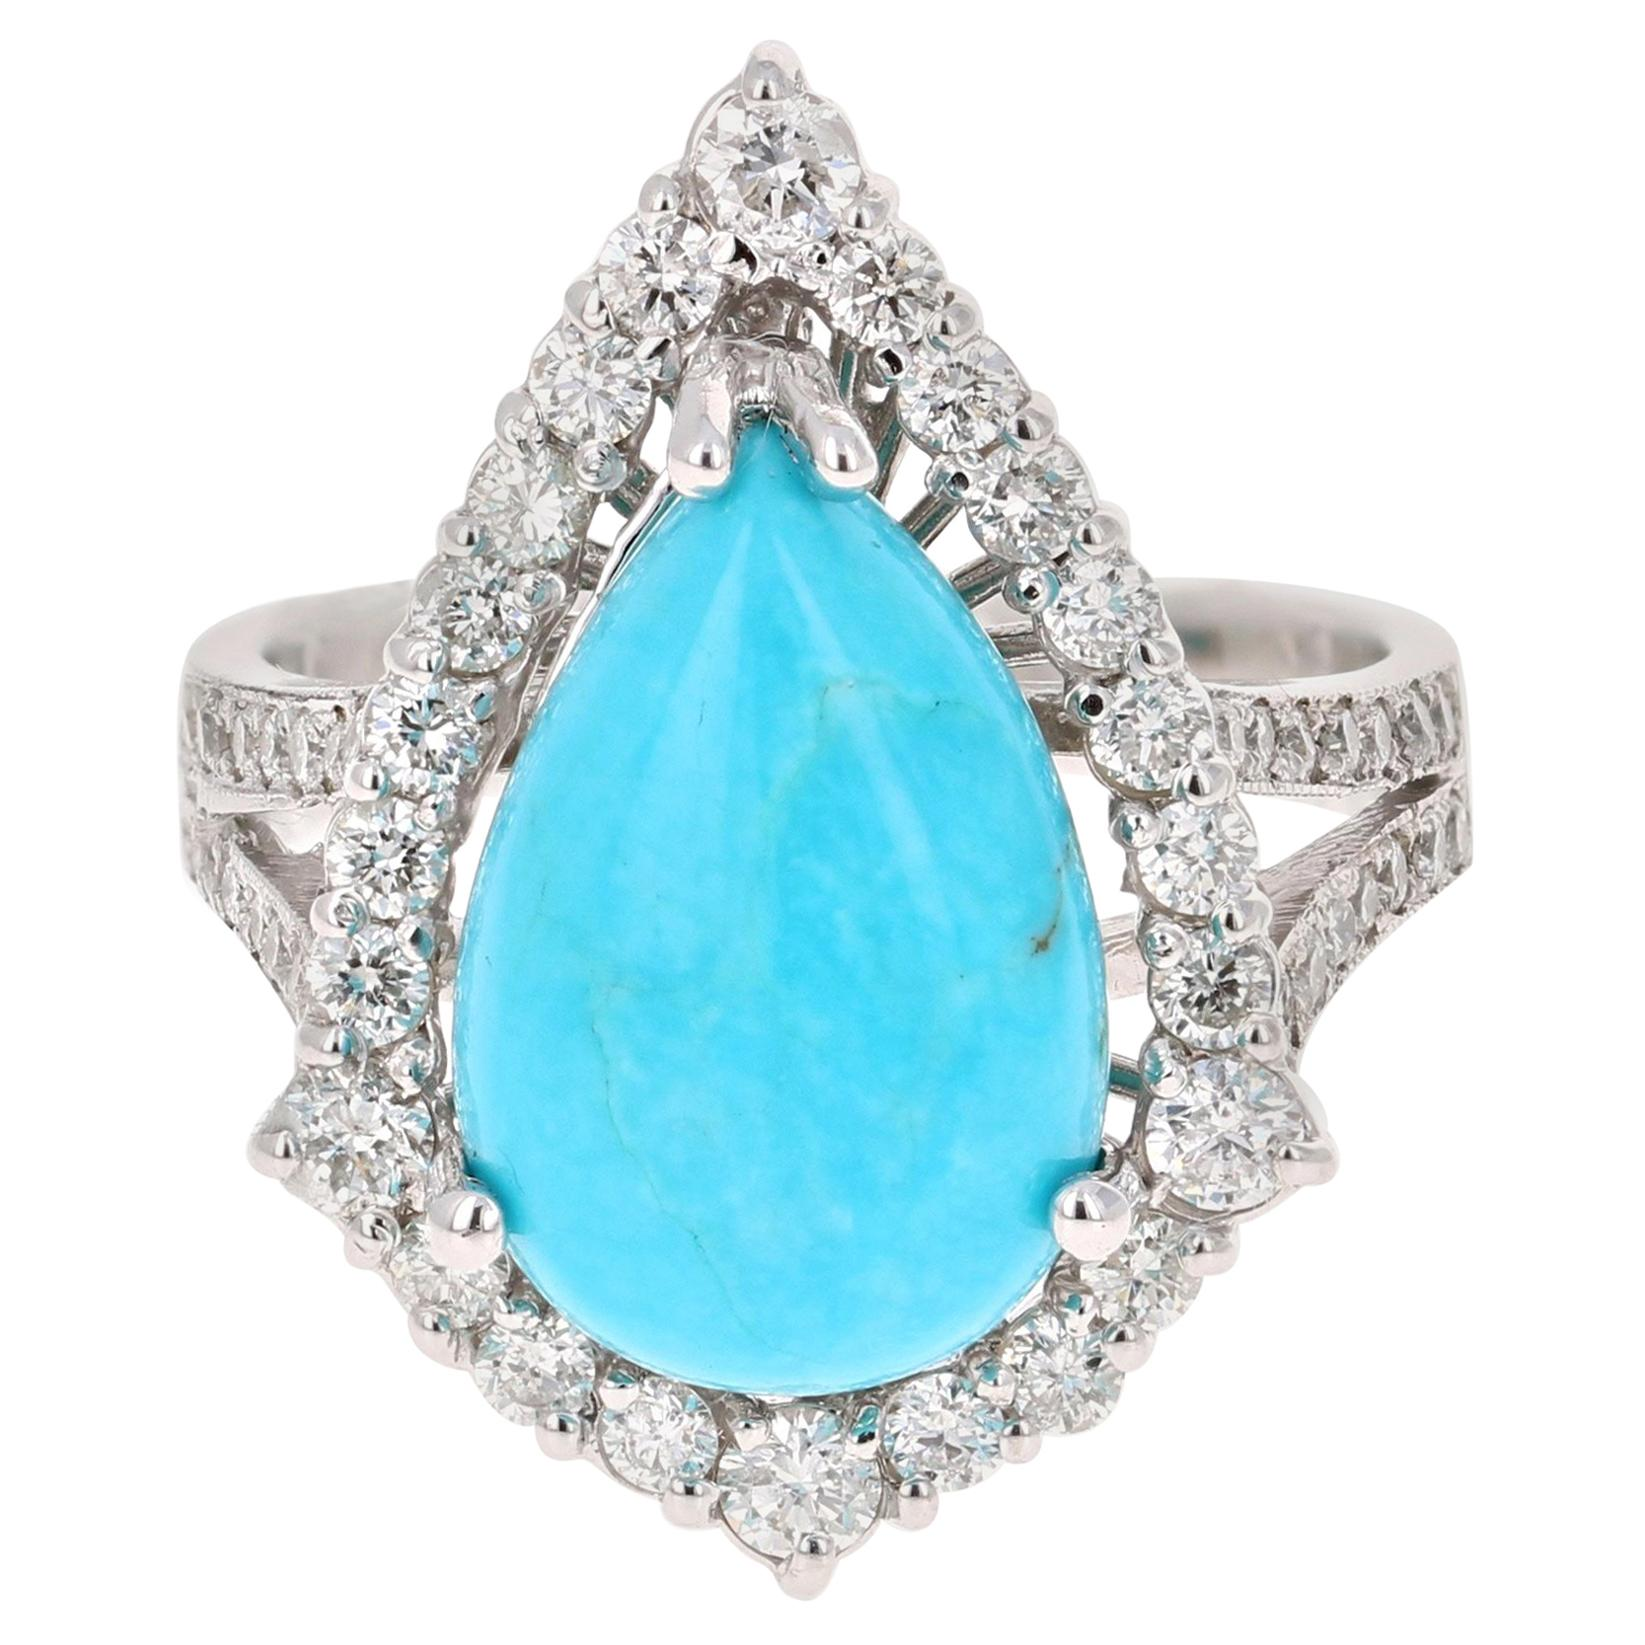 73f0059a8e417 Vintage & Antique Turquoise Jewelry: Rings, Necklaces & More - For ...